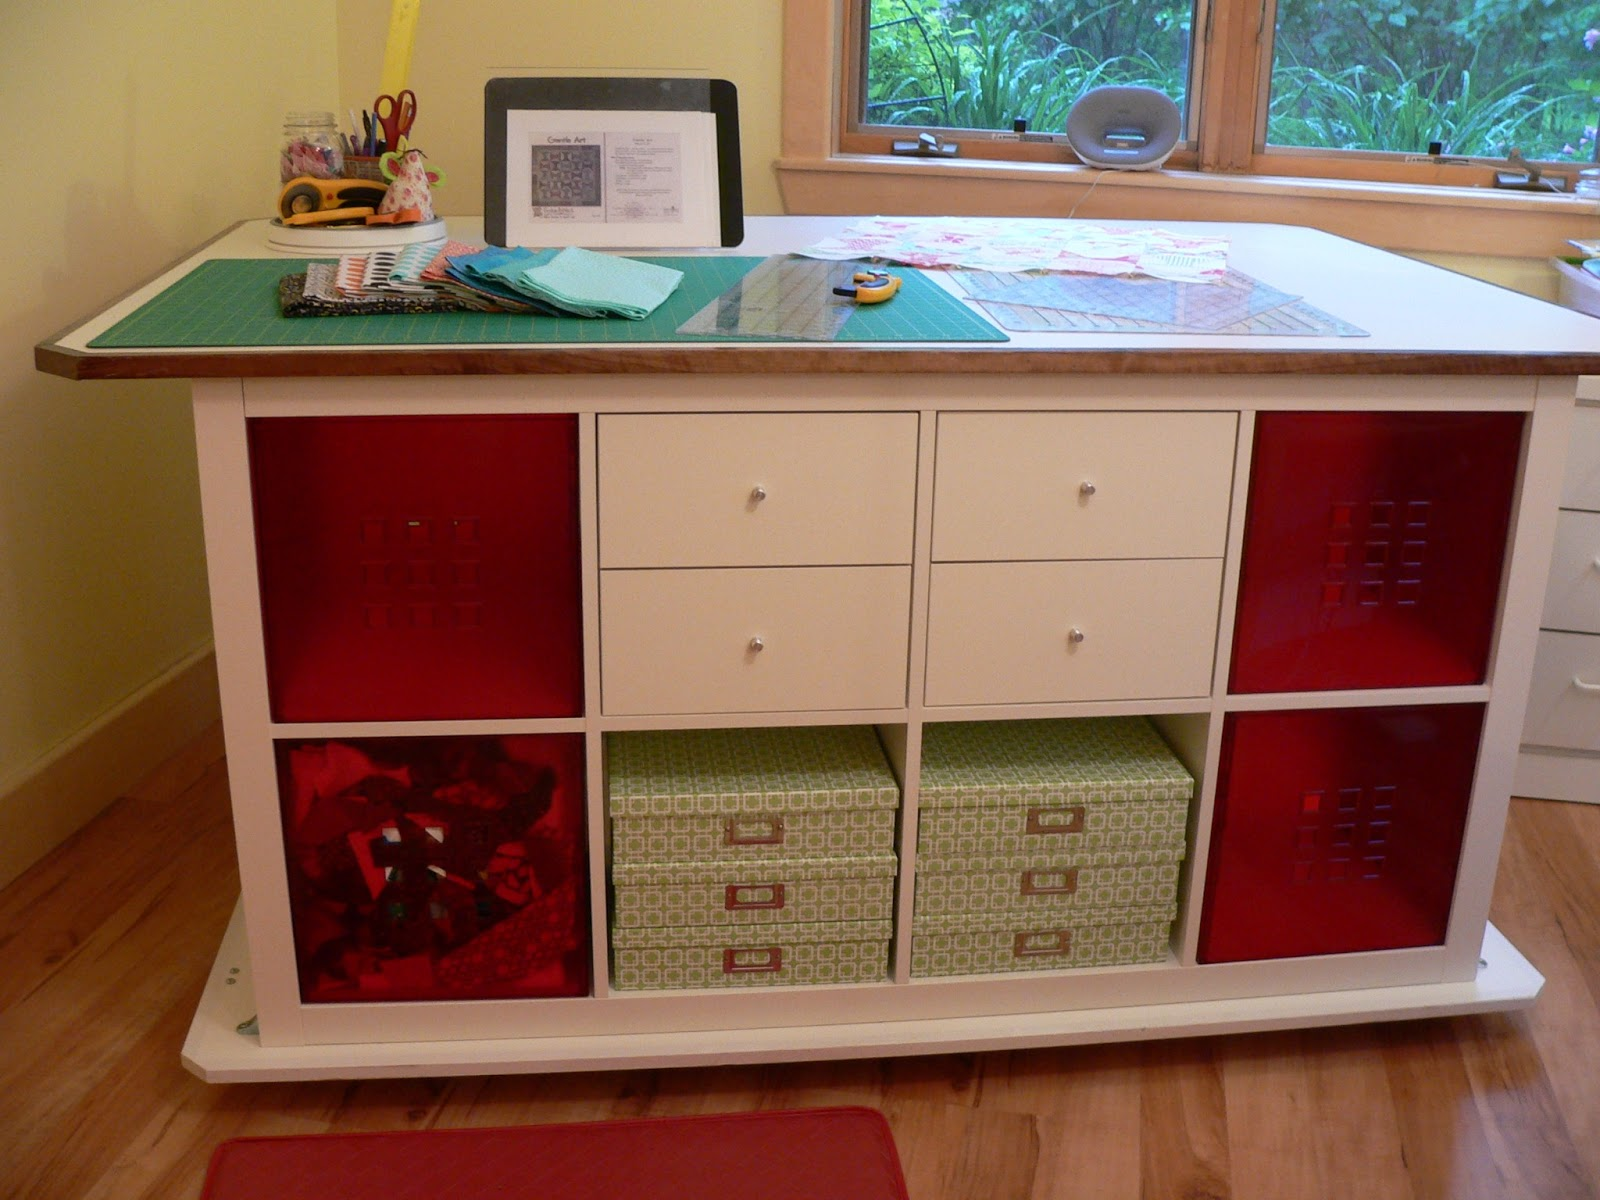 asimplelife Quilts: Dream Cutting Table!